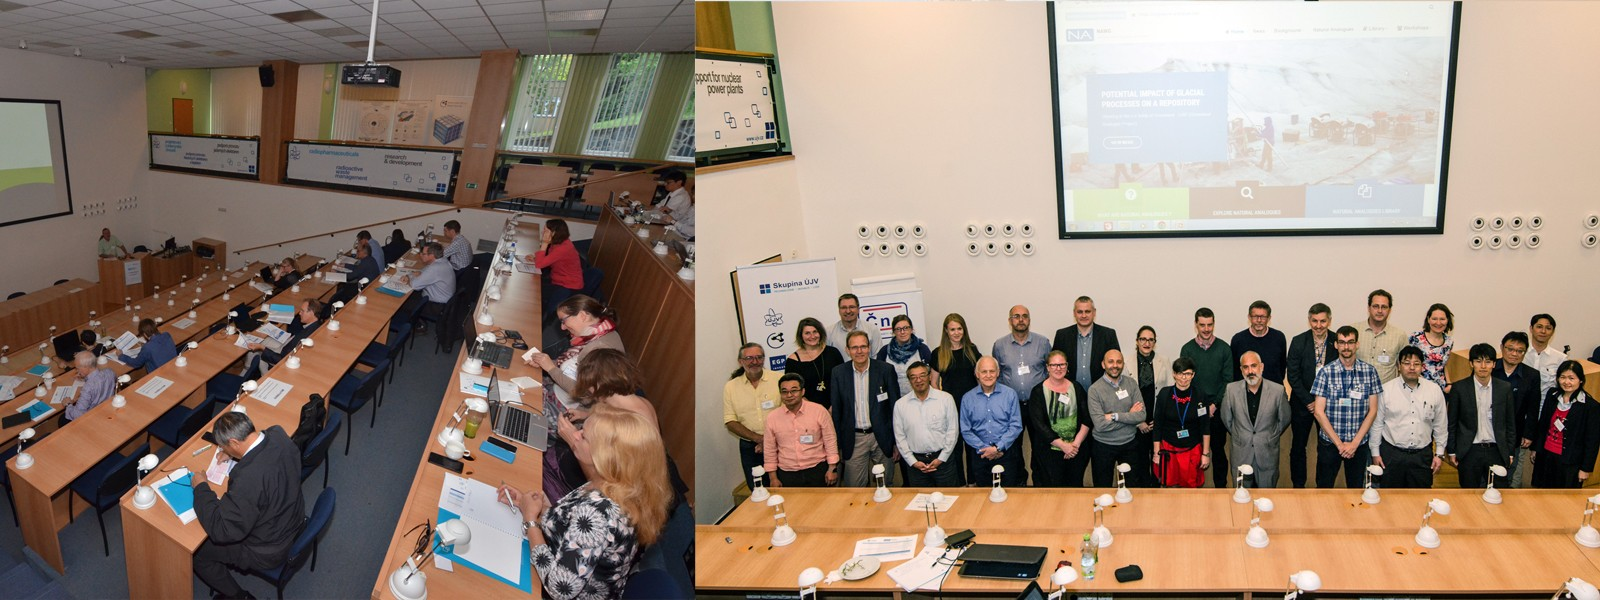 The 15th NAWG Workshop was held from Tuesday, 23rd to Thursday, 25th May, 2017 at the ÚJV laboratory, Řež, Prague in the Czech Republic View Presentations